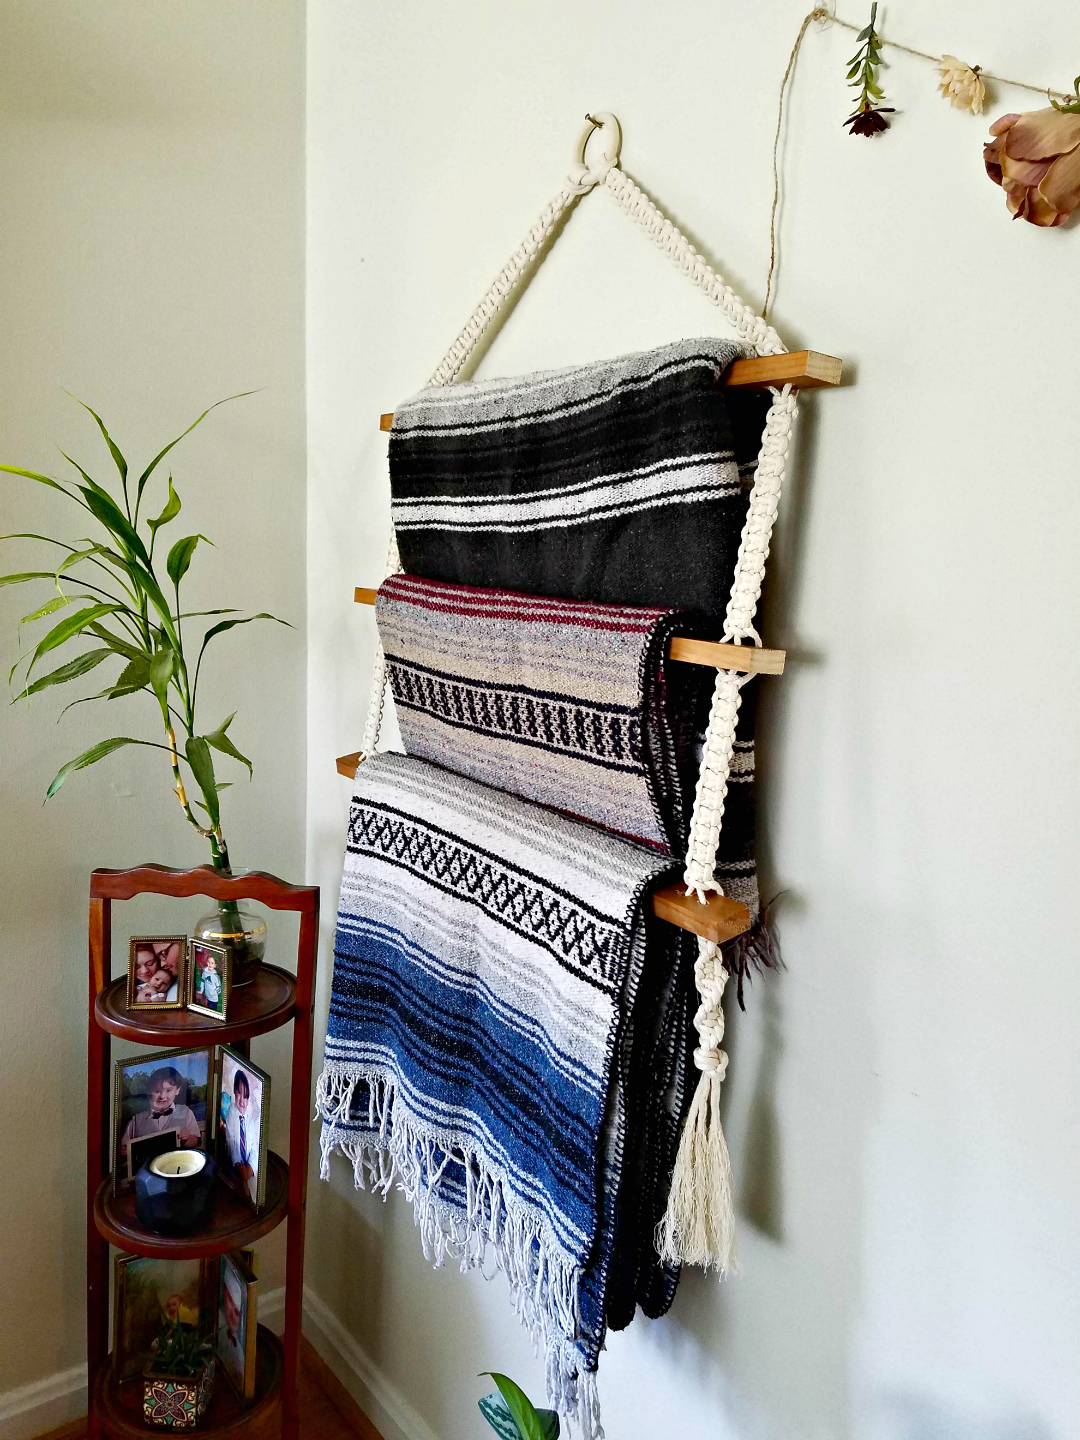 Bohemian Style Living Room With DIY Macrame Hanging Blanket Ladder - TheBohoAbode